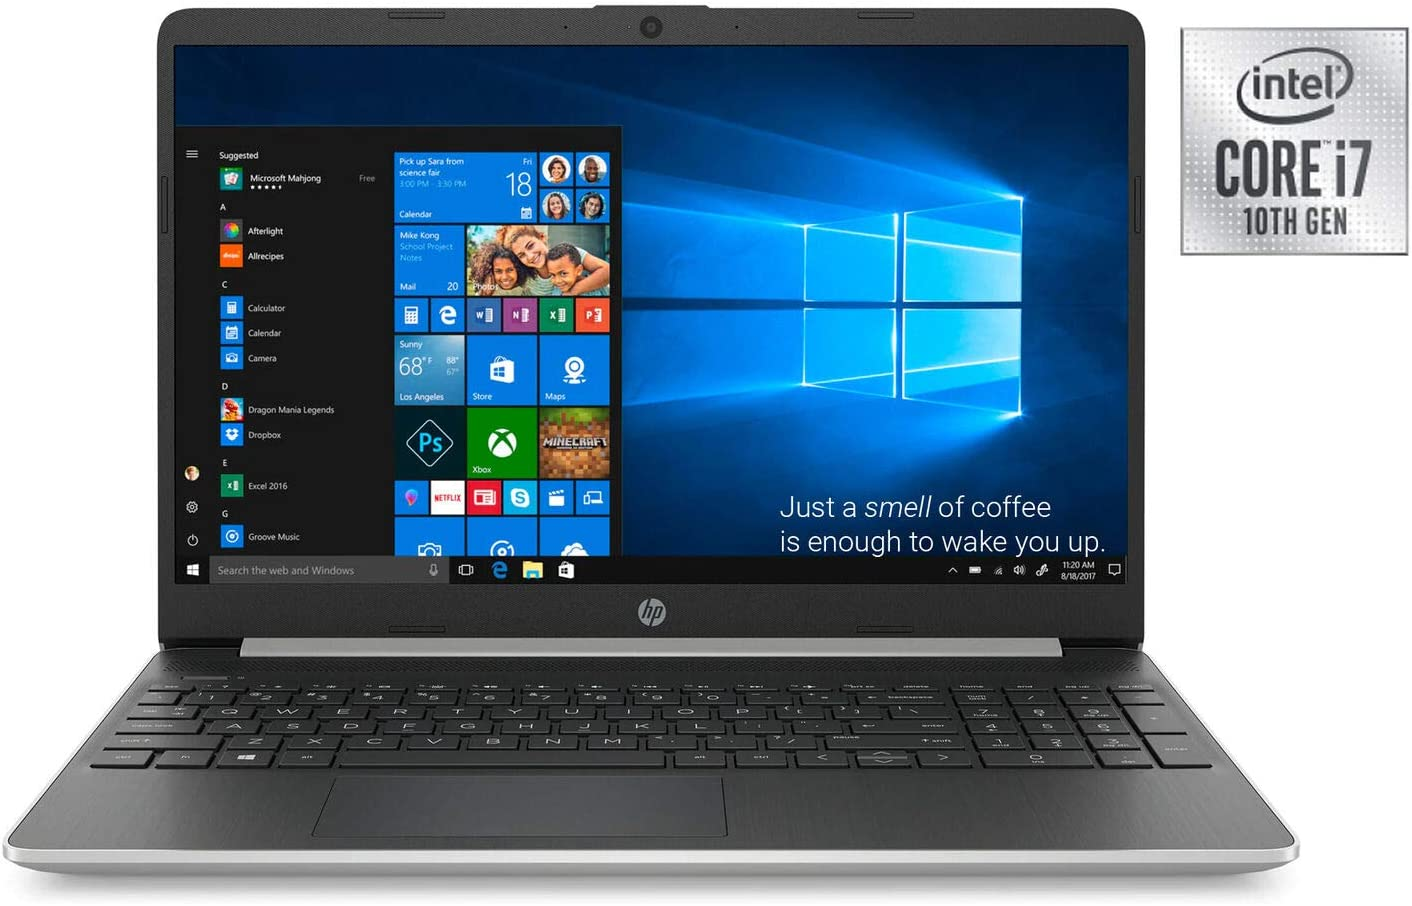 HP 15t Laptop PC 15.6 Inch HD WLED 256GB SSD + 16GB Intel Optane Laptop (i7-1065G7, 8GB RAM, Iris Plus Graphics, Windows 10 Home, Silver) 15-dy1071wm